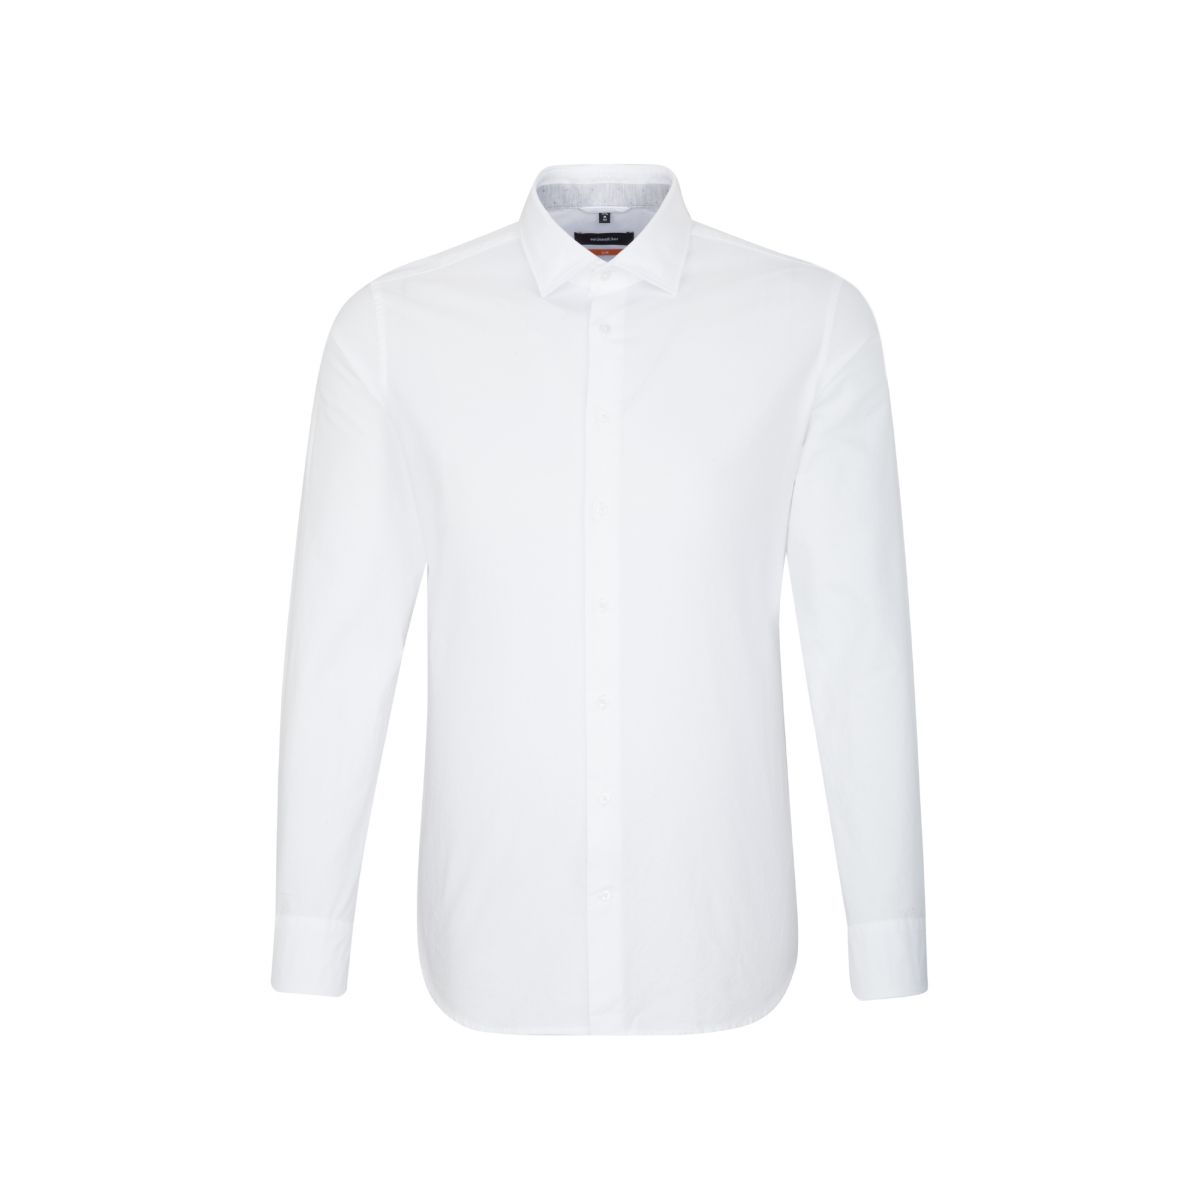 Chemise slim Printed blanche oxford